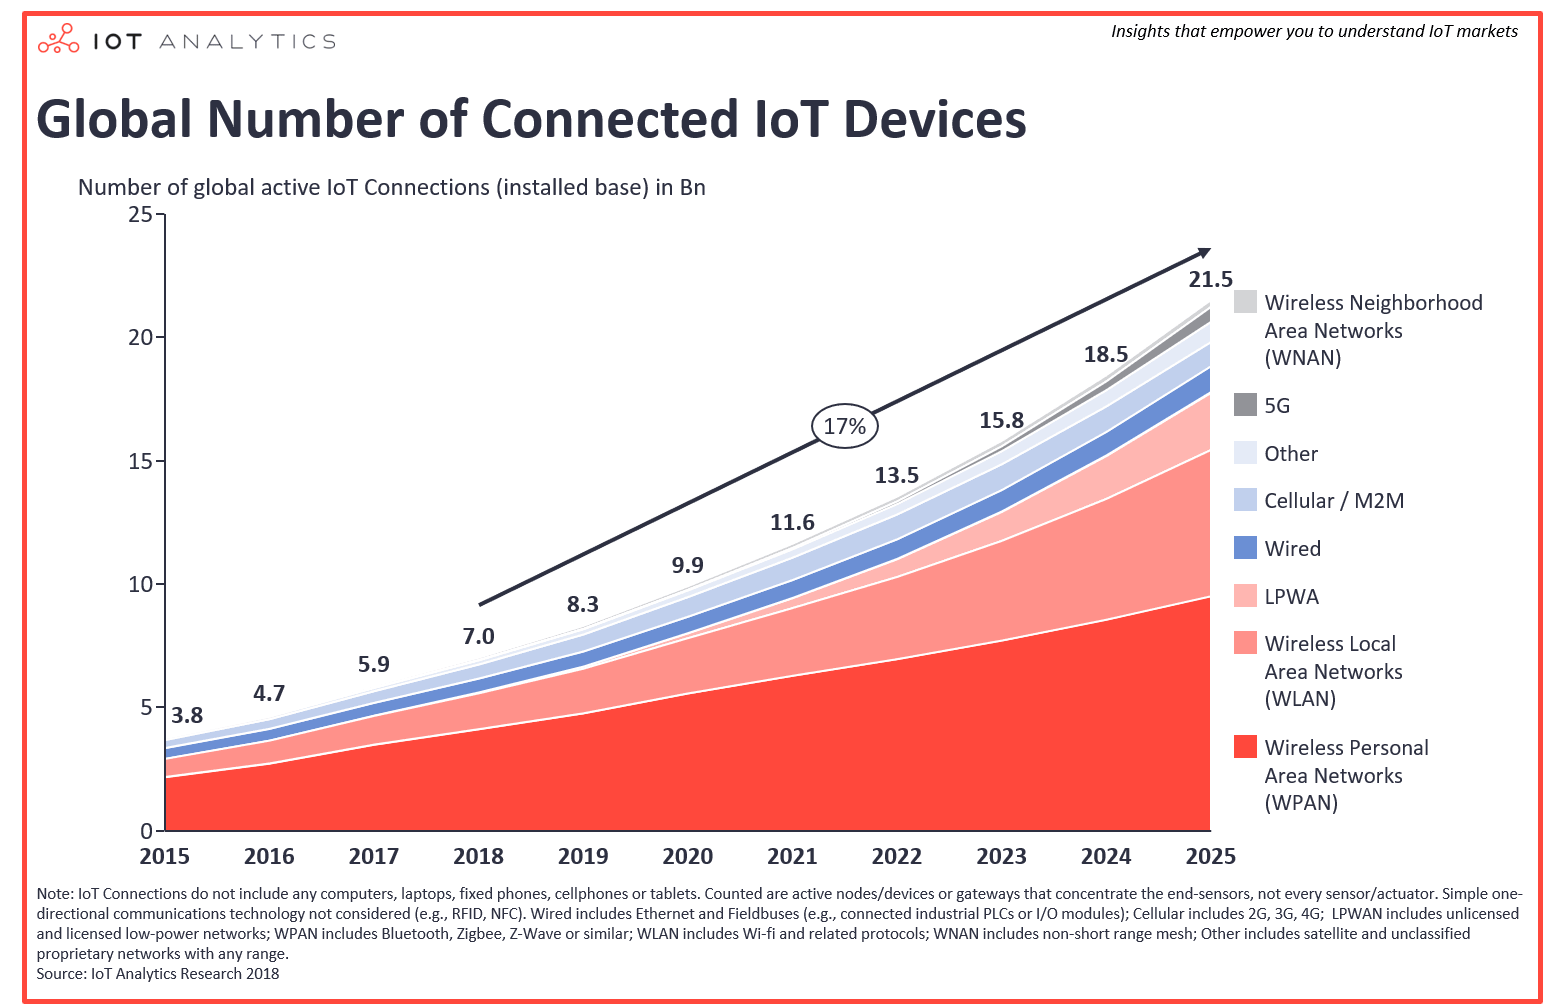 Number of IoT devices worldwide 2015 - 2025